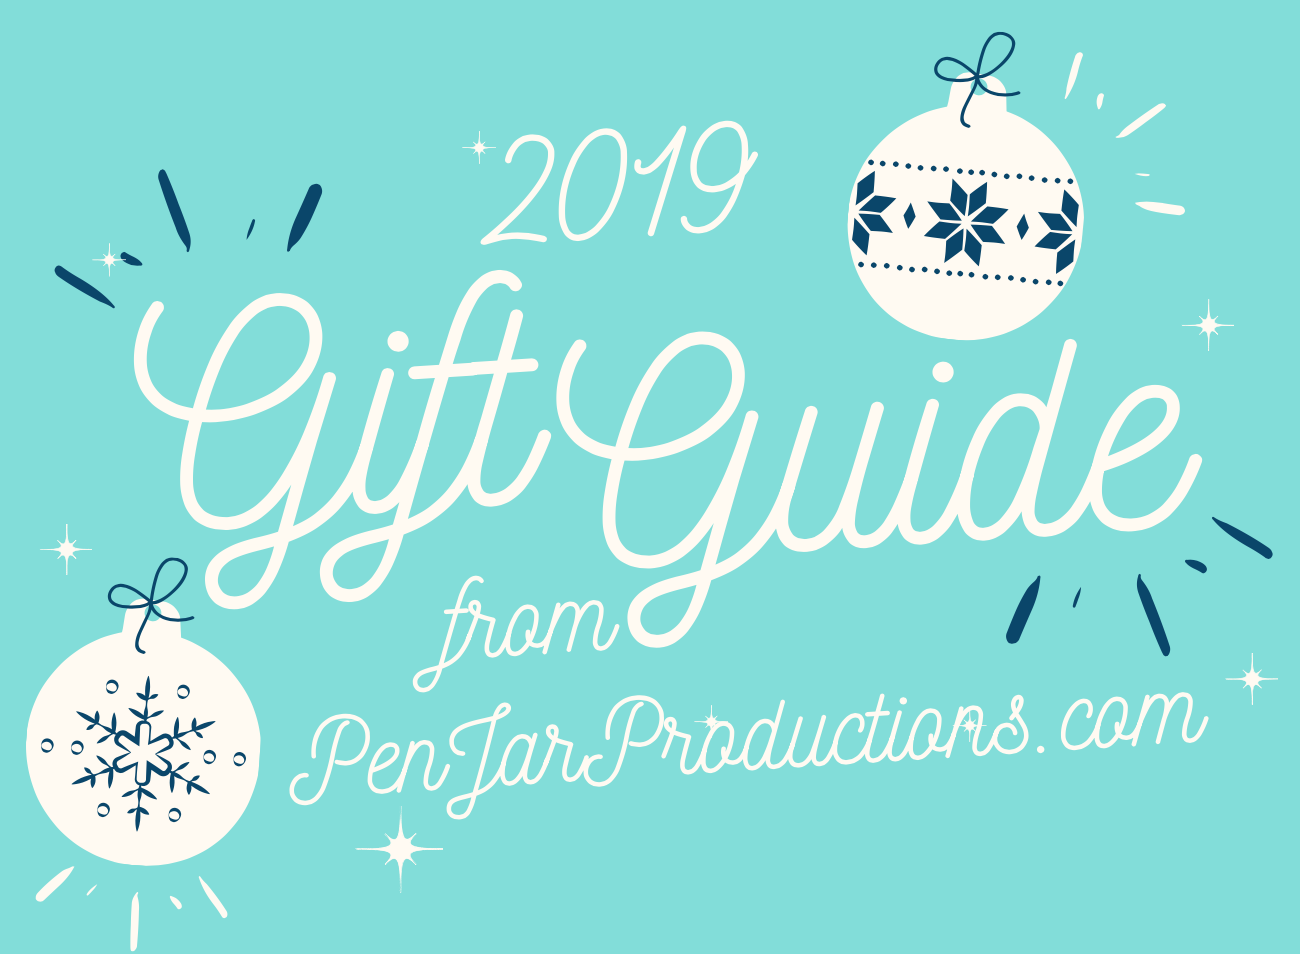 2019 GIft Guide Announcement for PenJarProductions.com